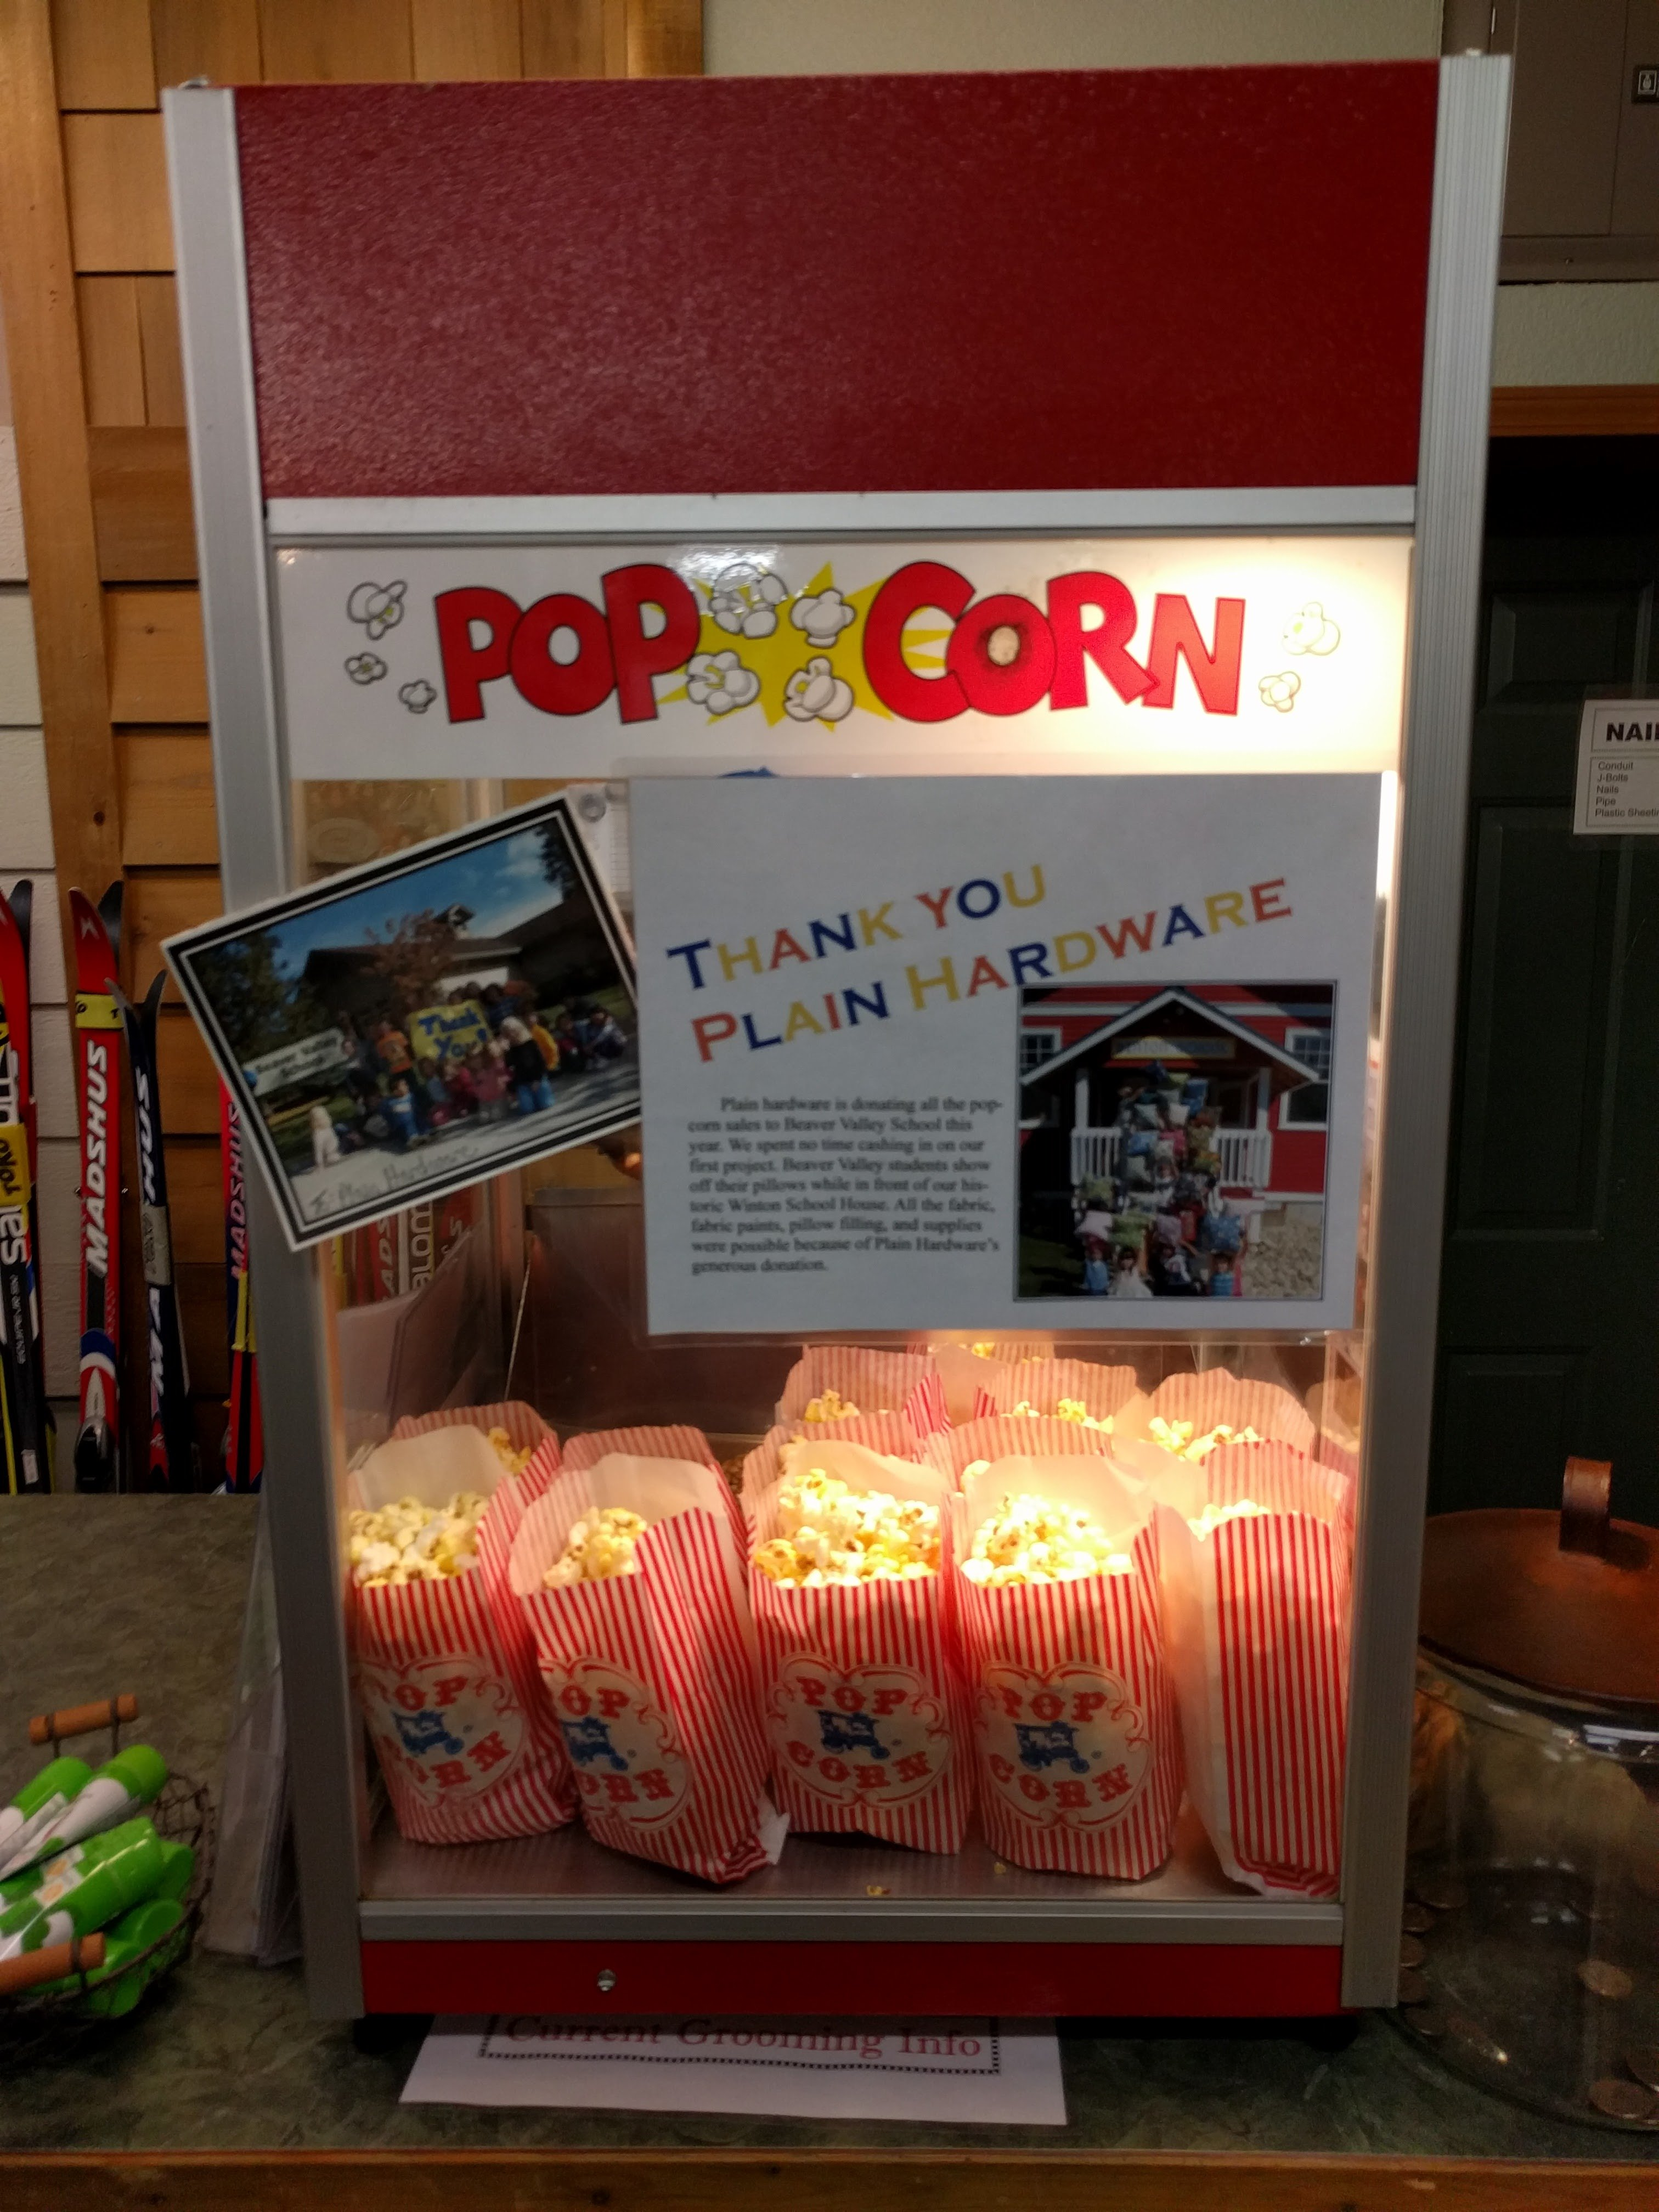 popcorn at Plain hardware